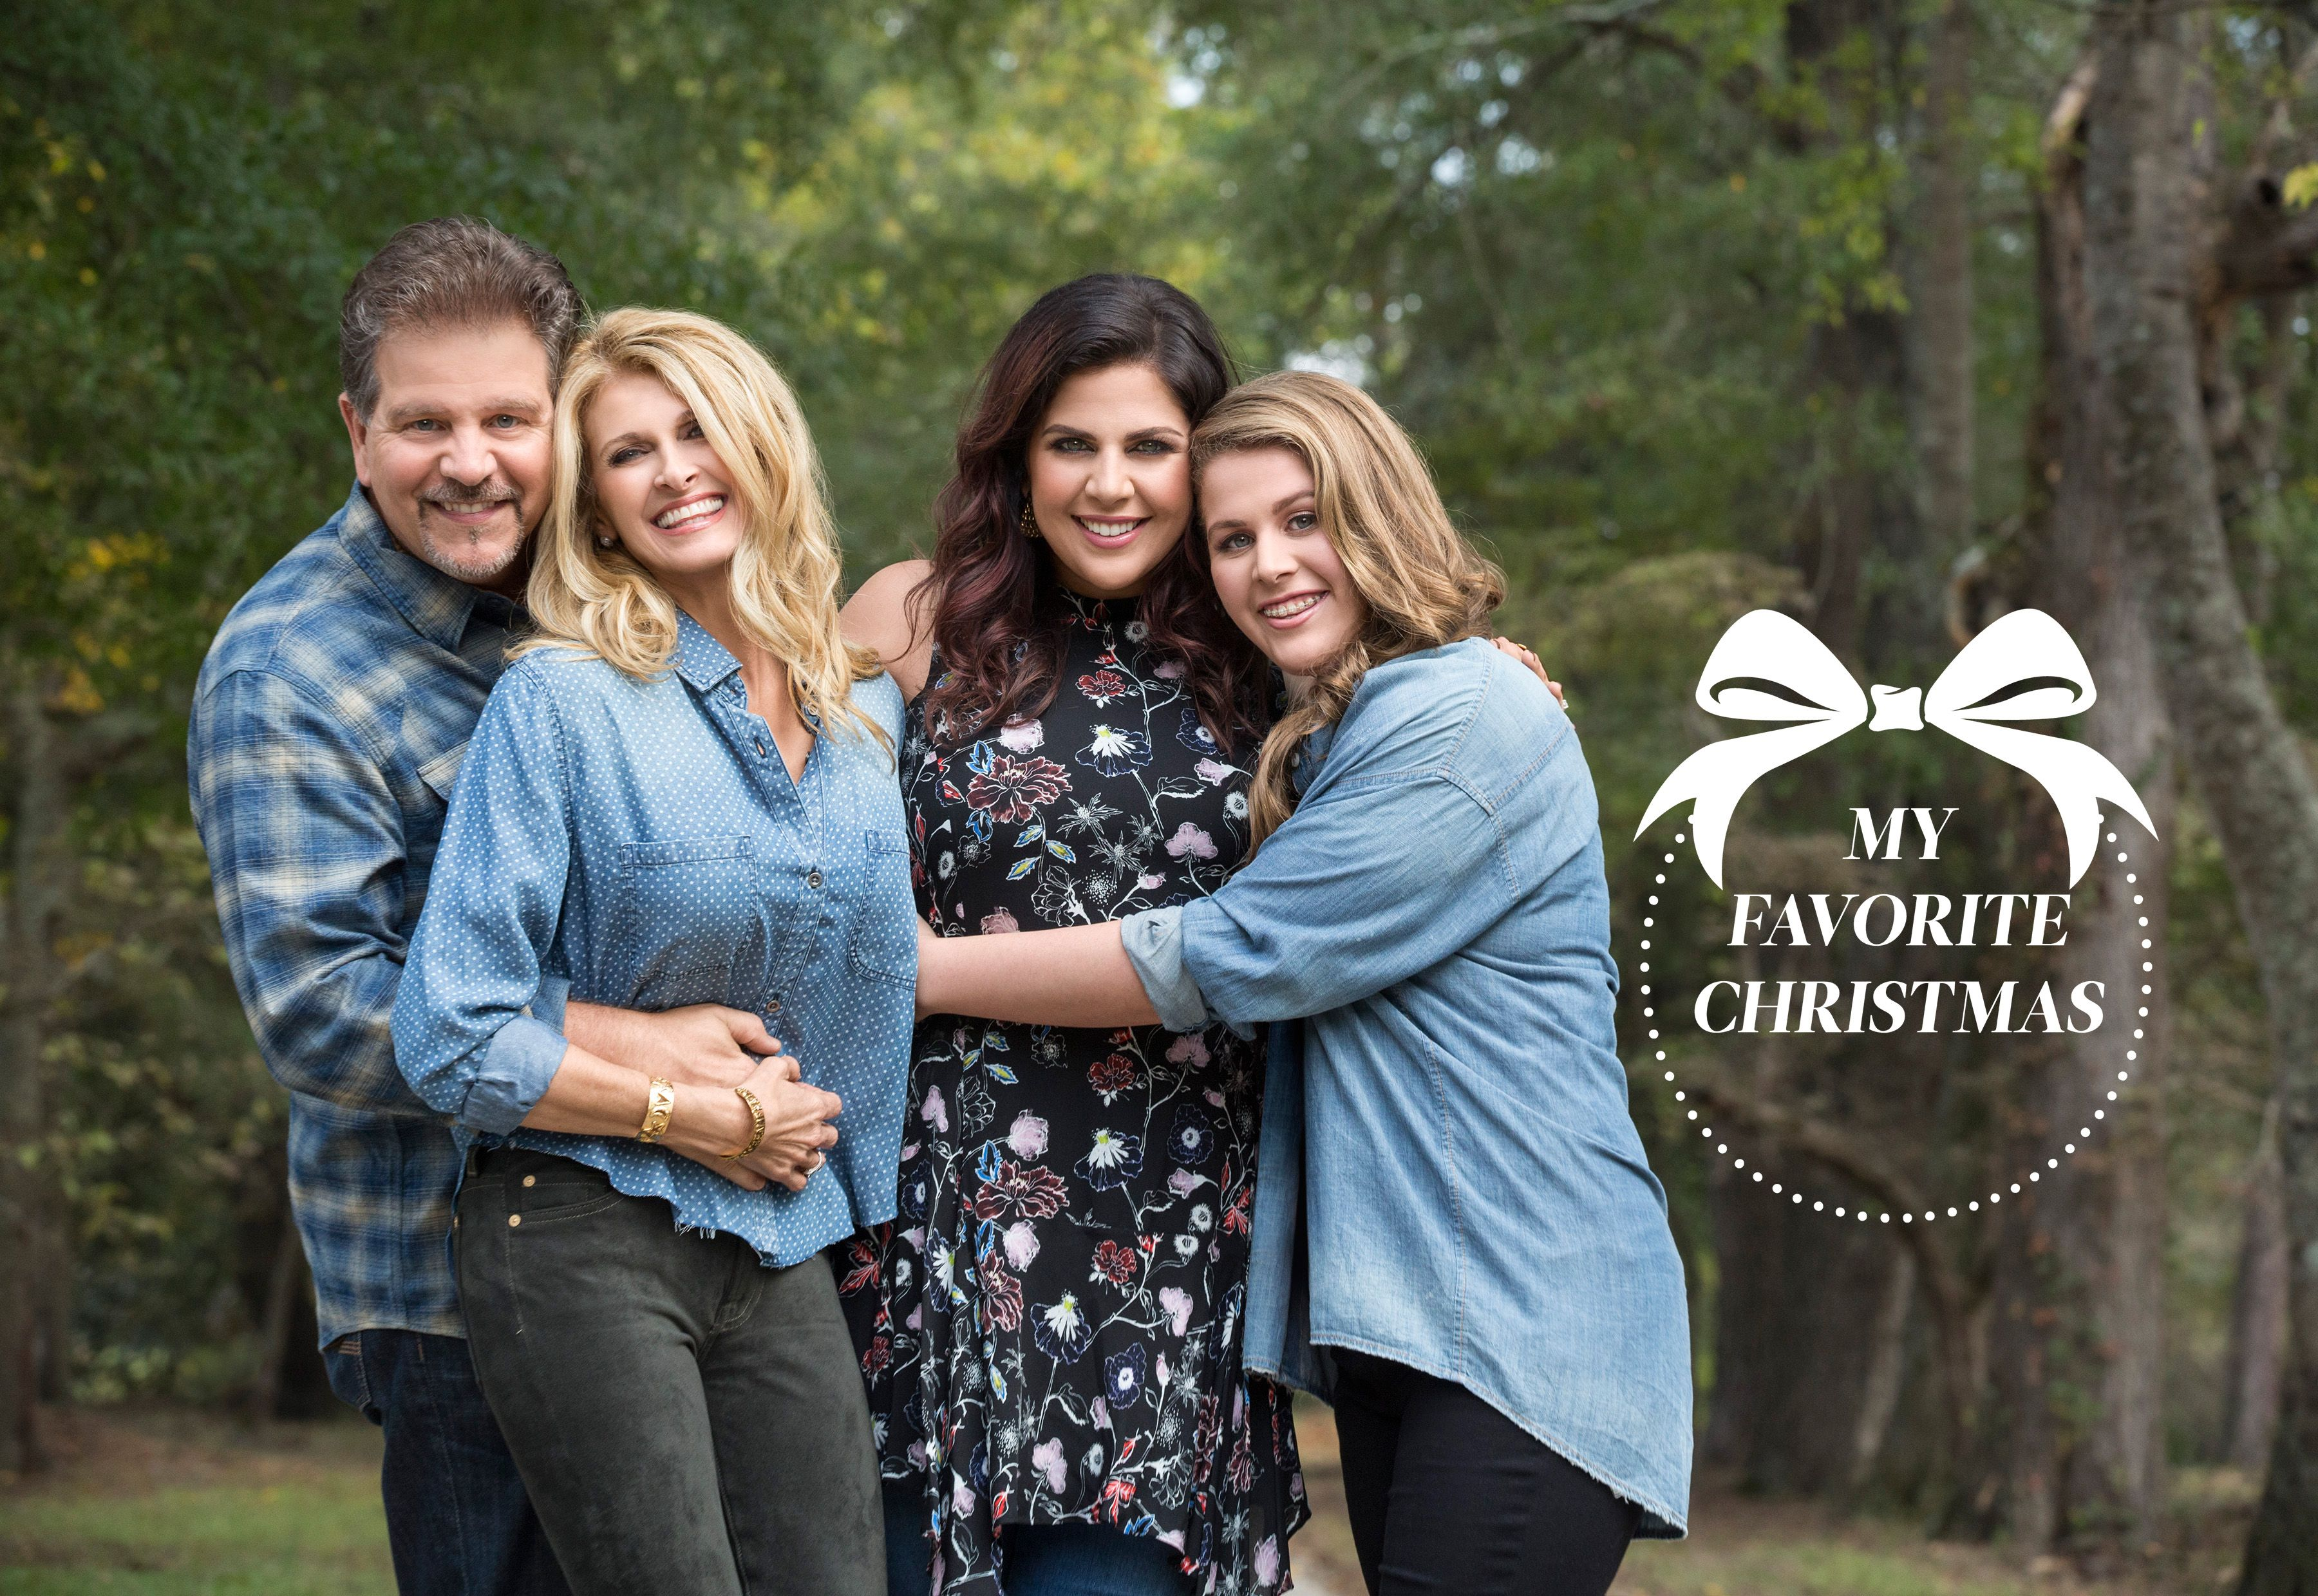 Hillary Scott of Lady Antebellum Opens Up About Passing Christmas ...